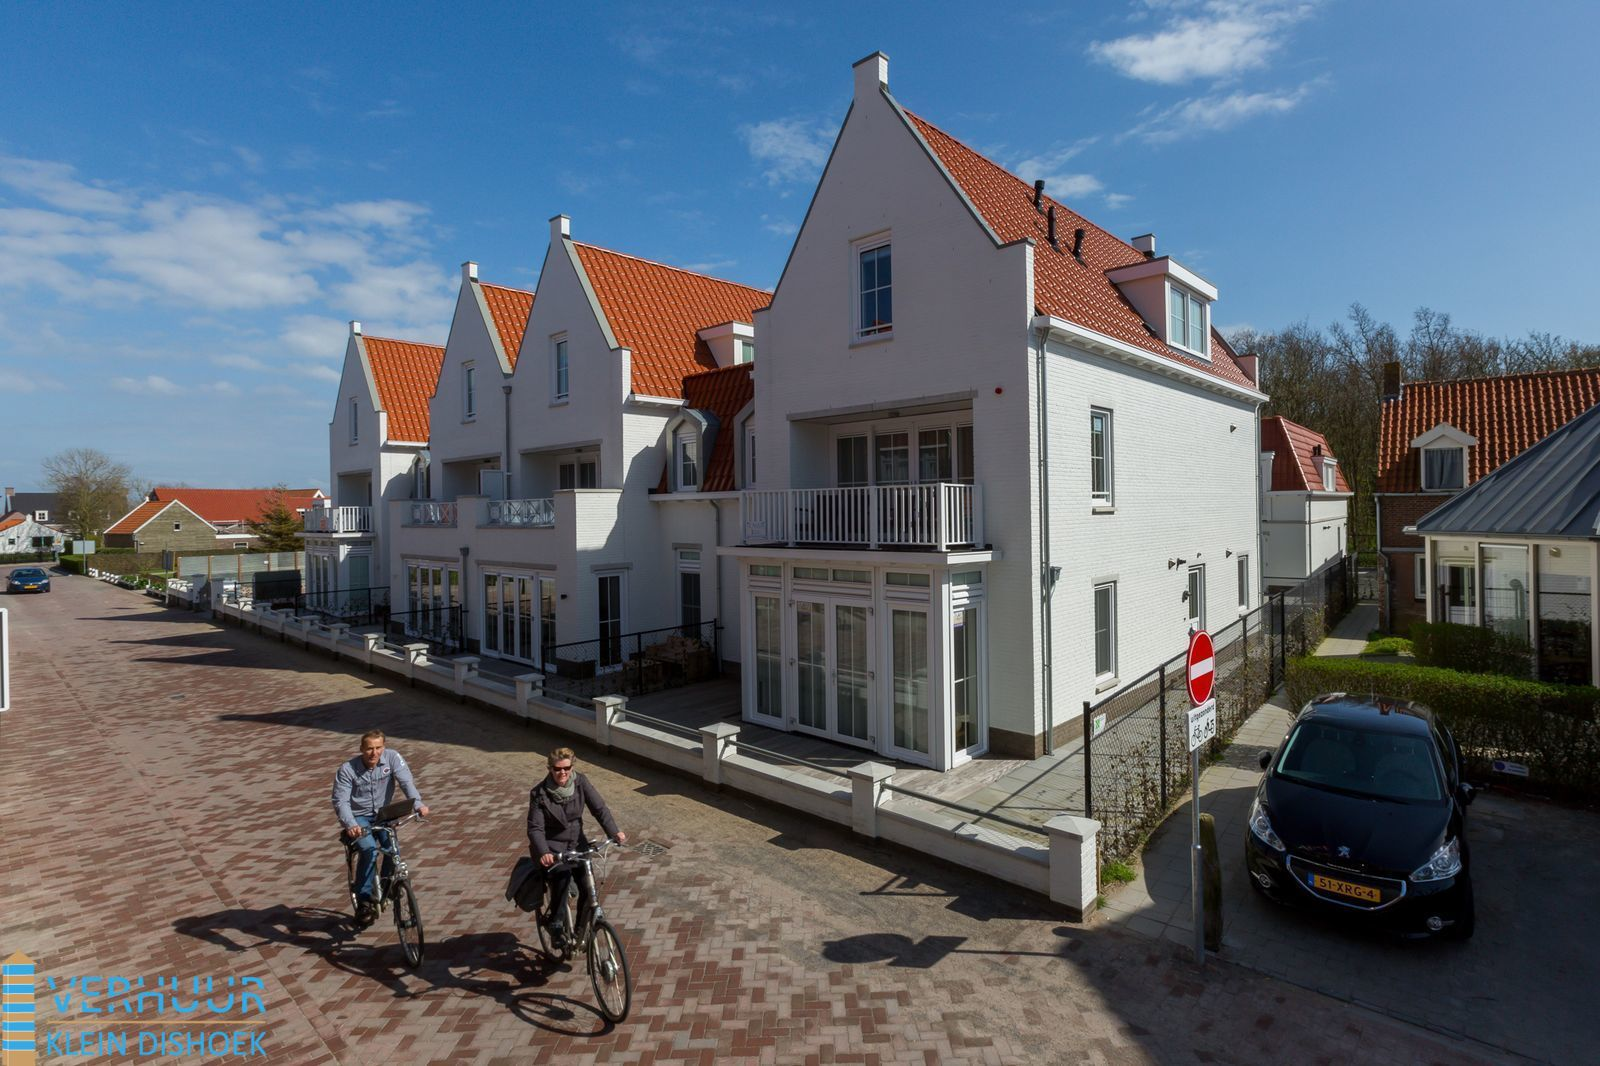 Appartement - Kaapduinseweg 13 | Dishoek